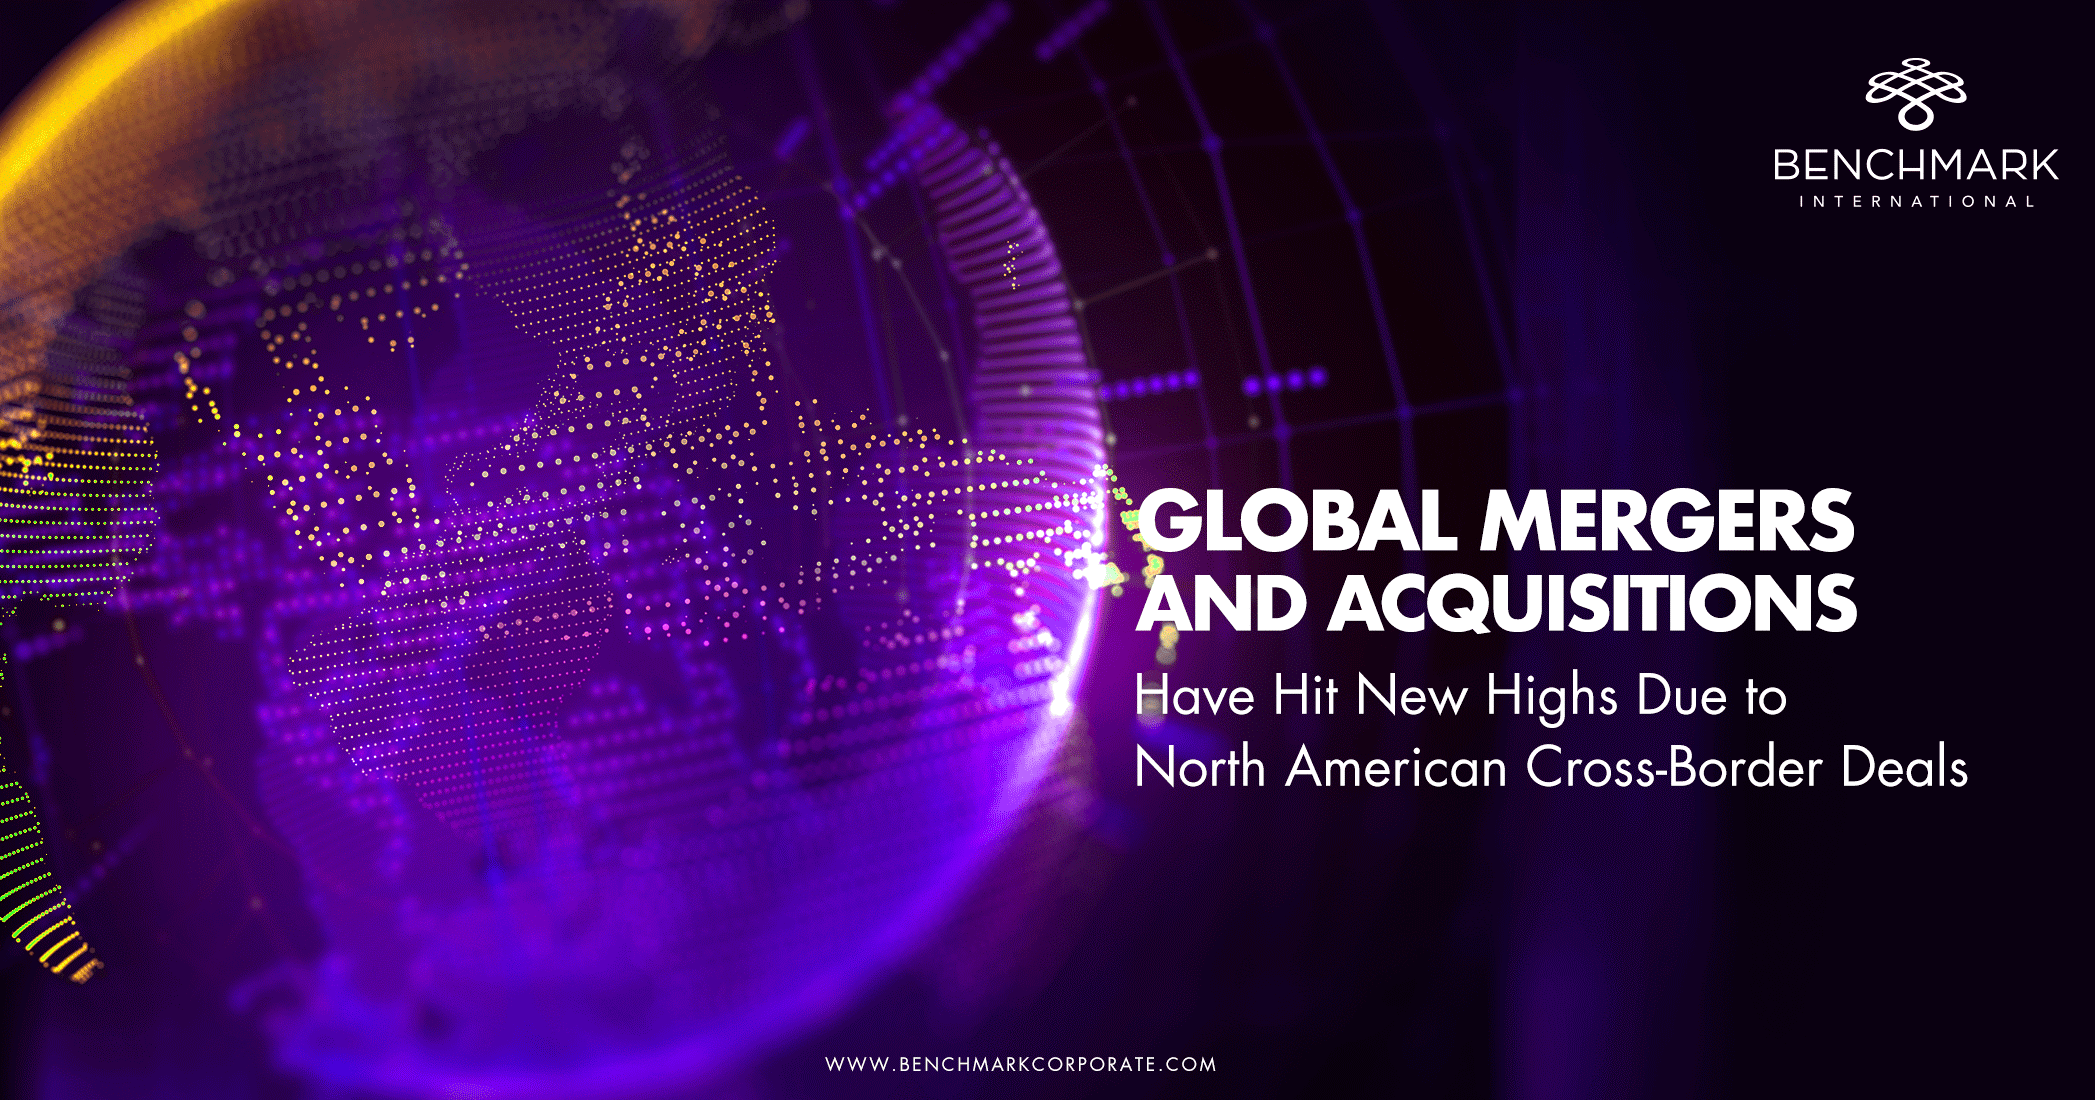 Global Mergers and Acquisitions Have Hit New Highs Due to North American Cross-Border Deals